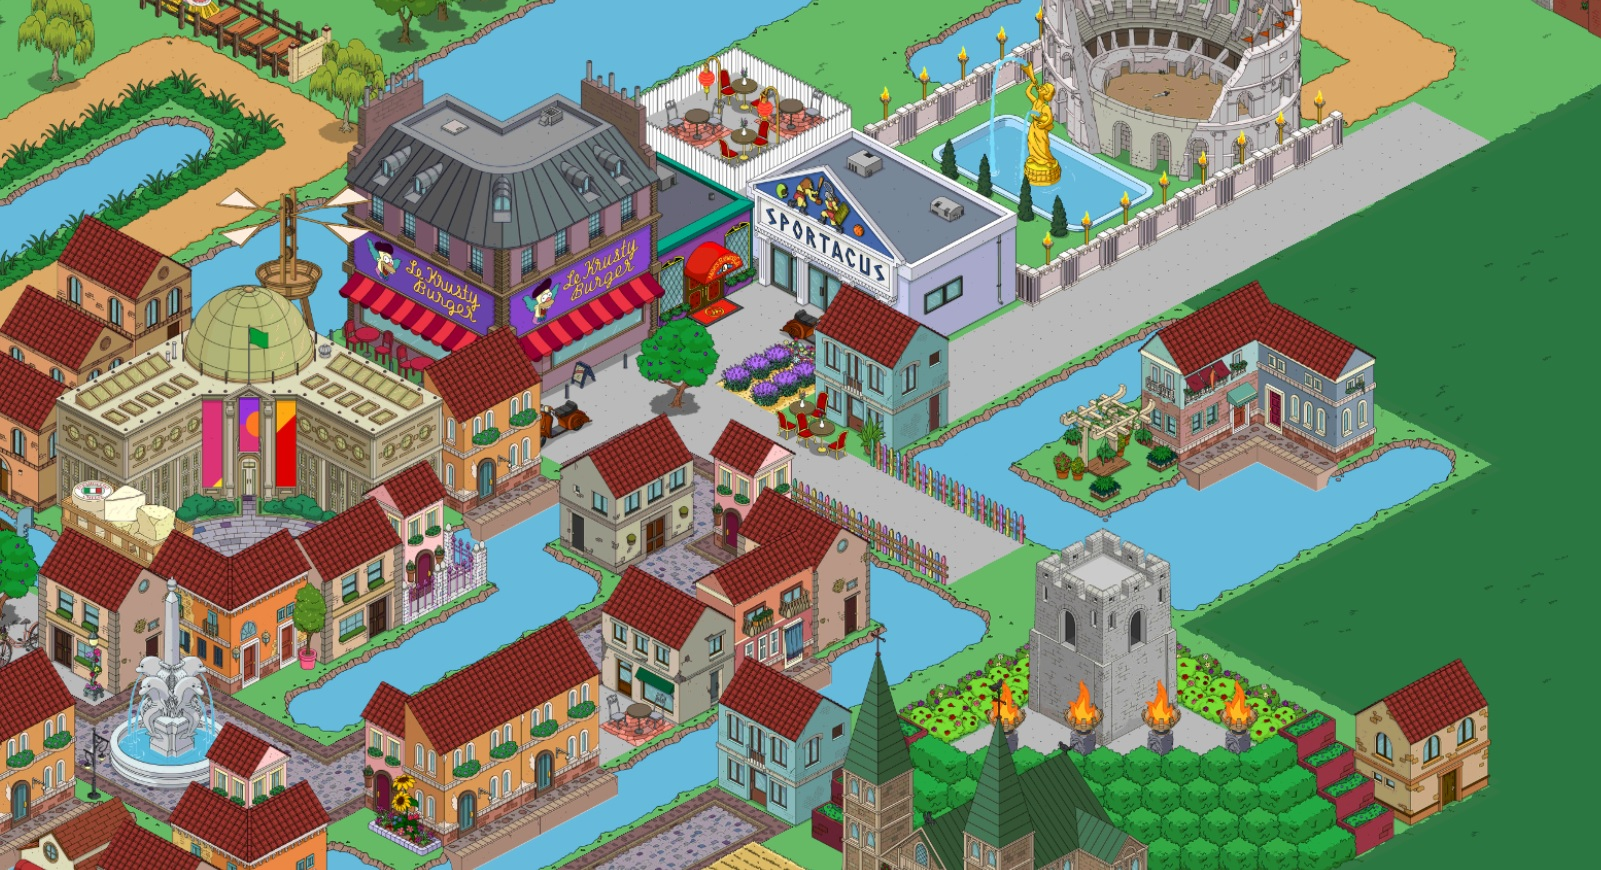 TSTO_Jobs_Event_Area_Design_P1.jpg